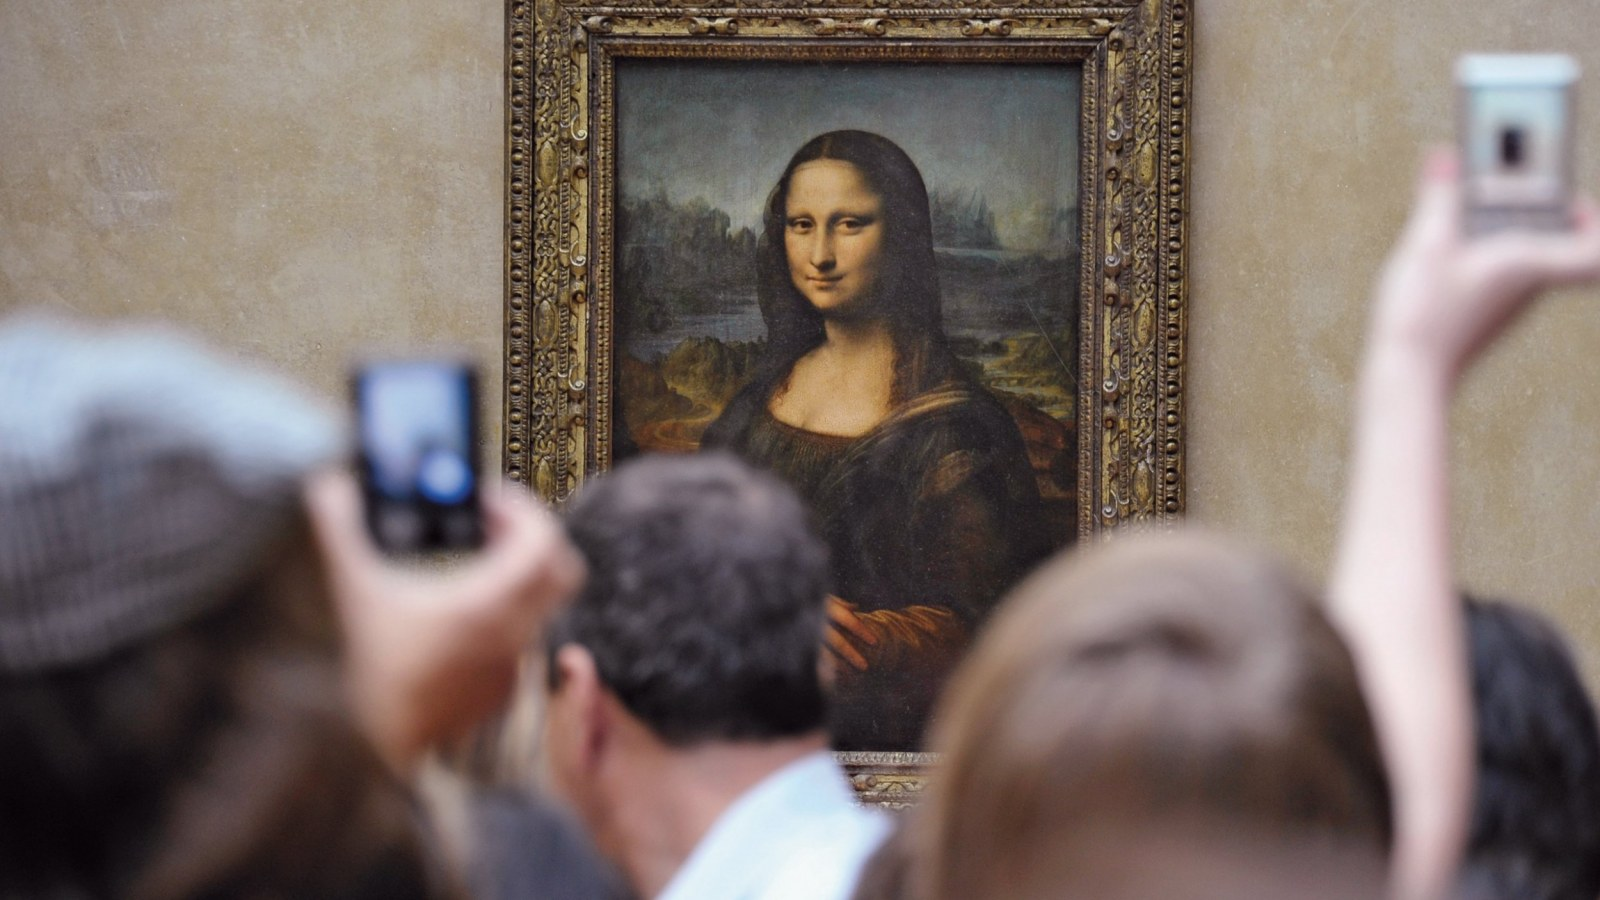 Identifying the Real-Life Mona Lisa